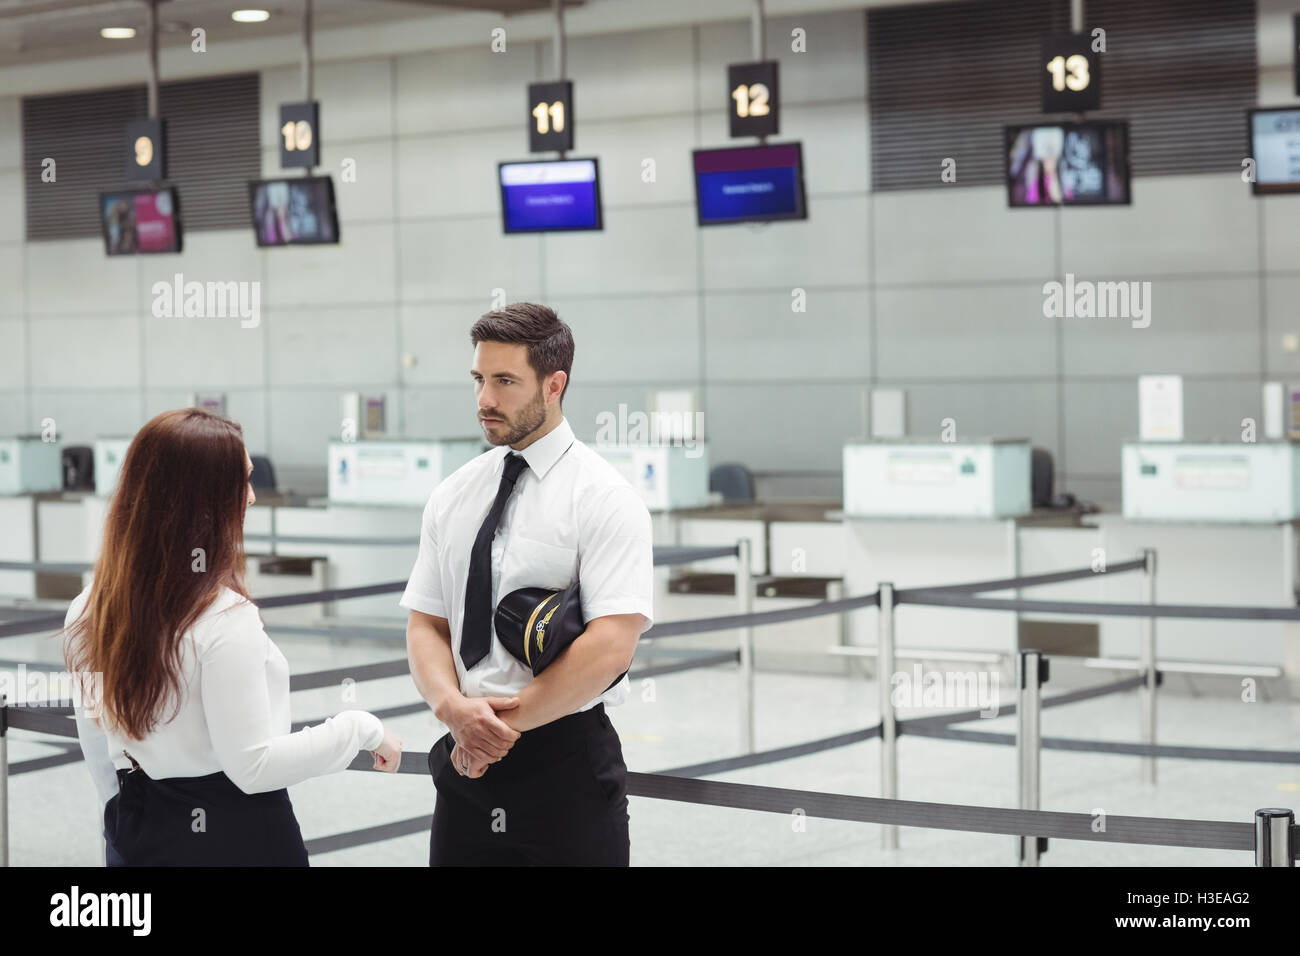 Pilot and flight attendant interacting with each other - Stock Image